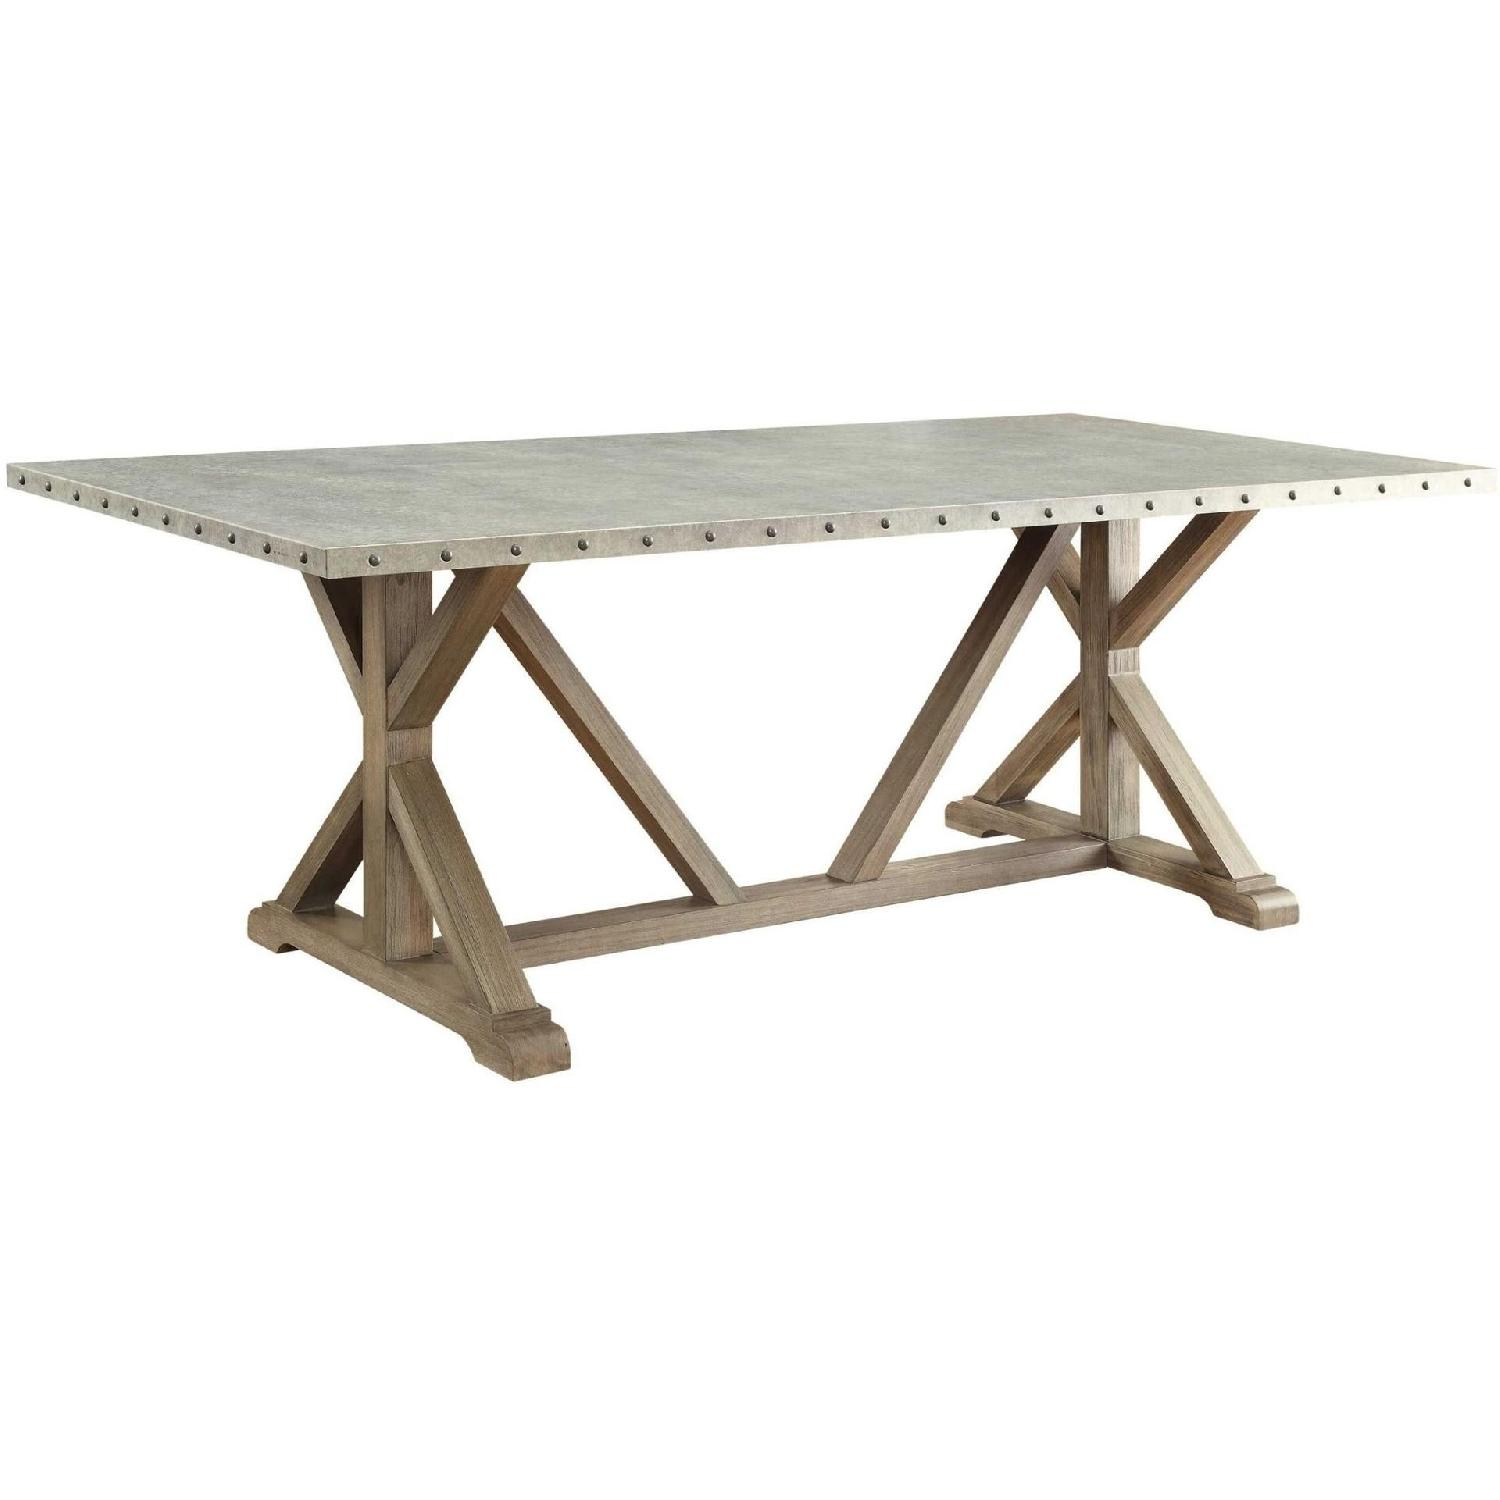 Industrial Modern Dining Table w/ Zinc Metal Wrapped Top - image-0